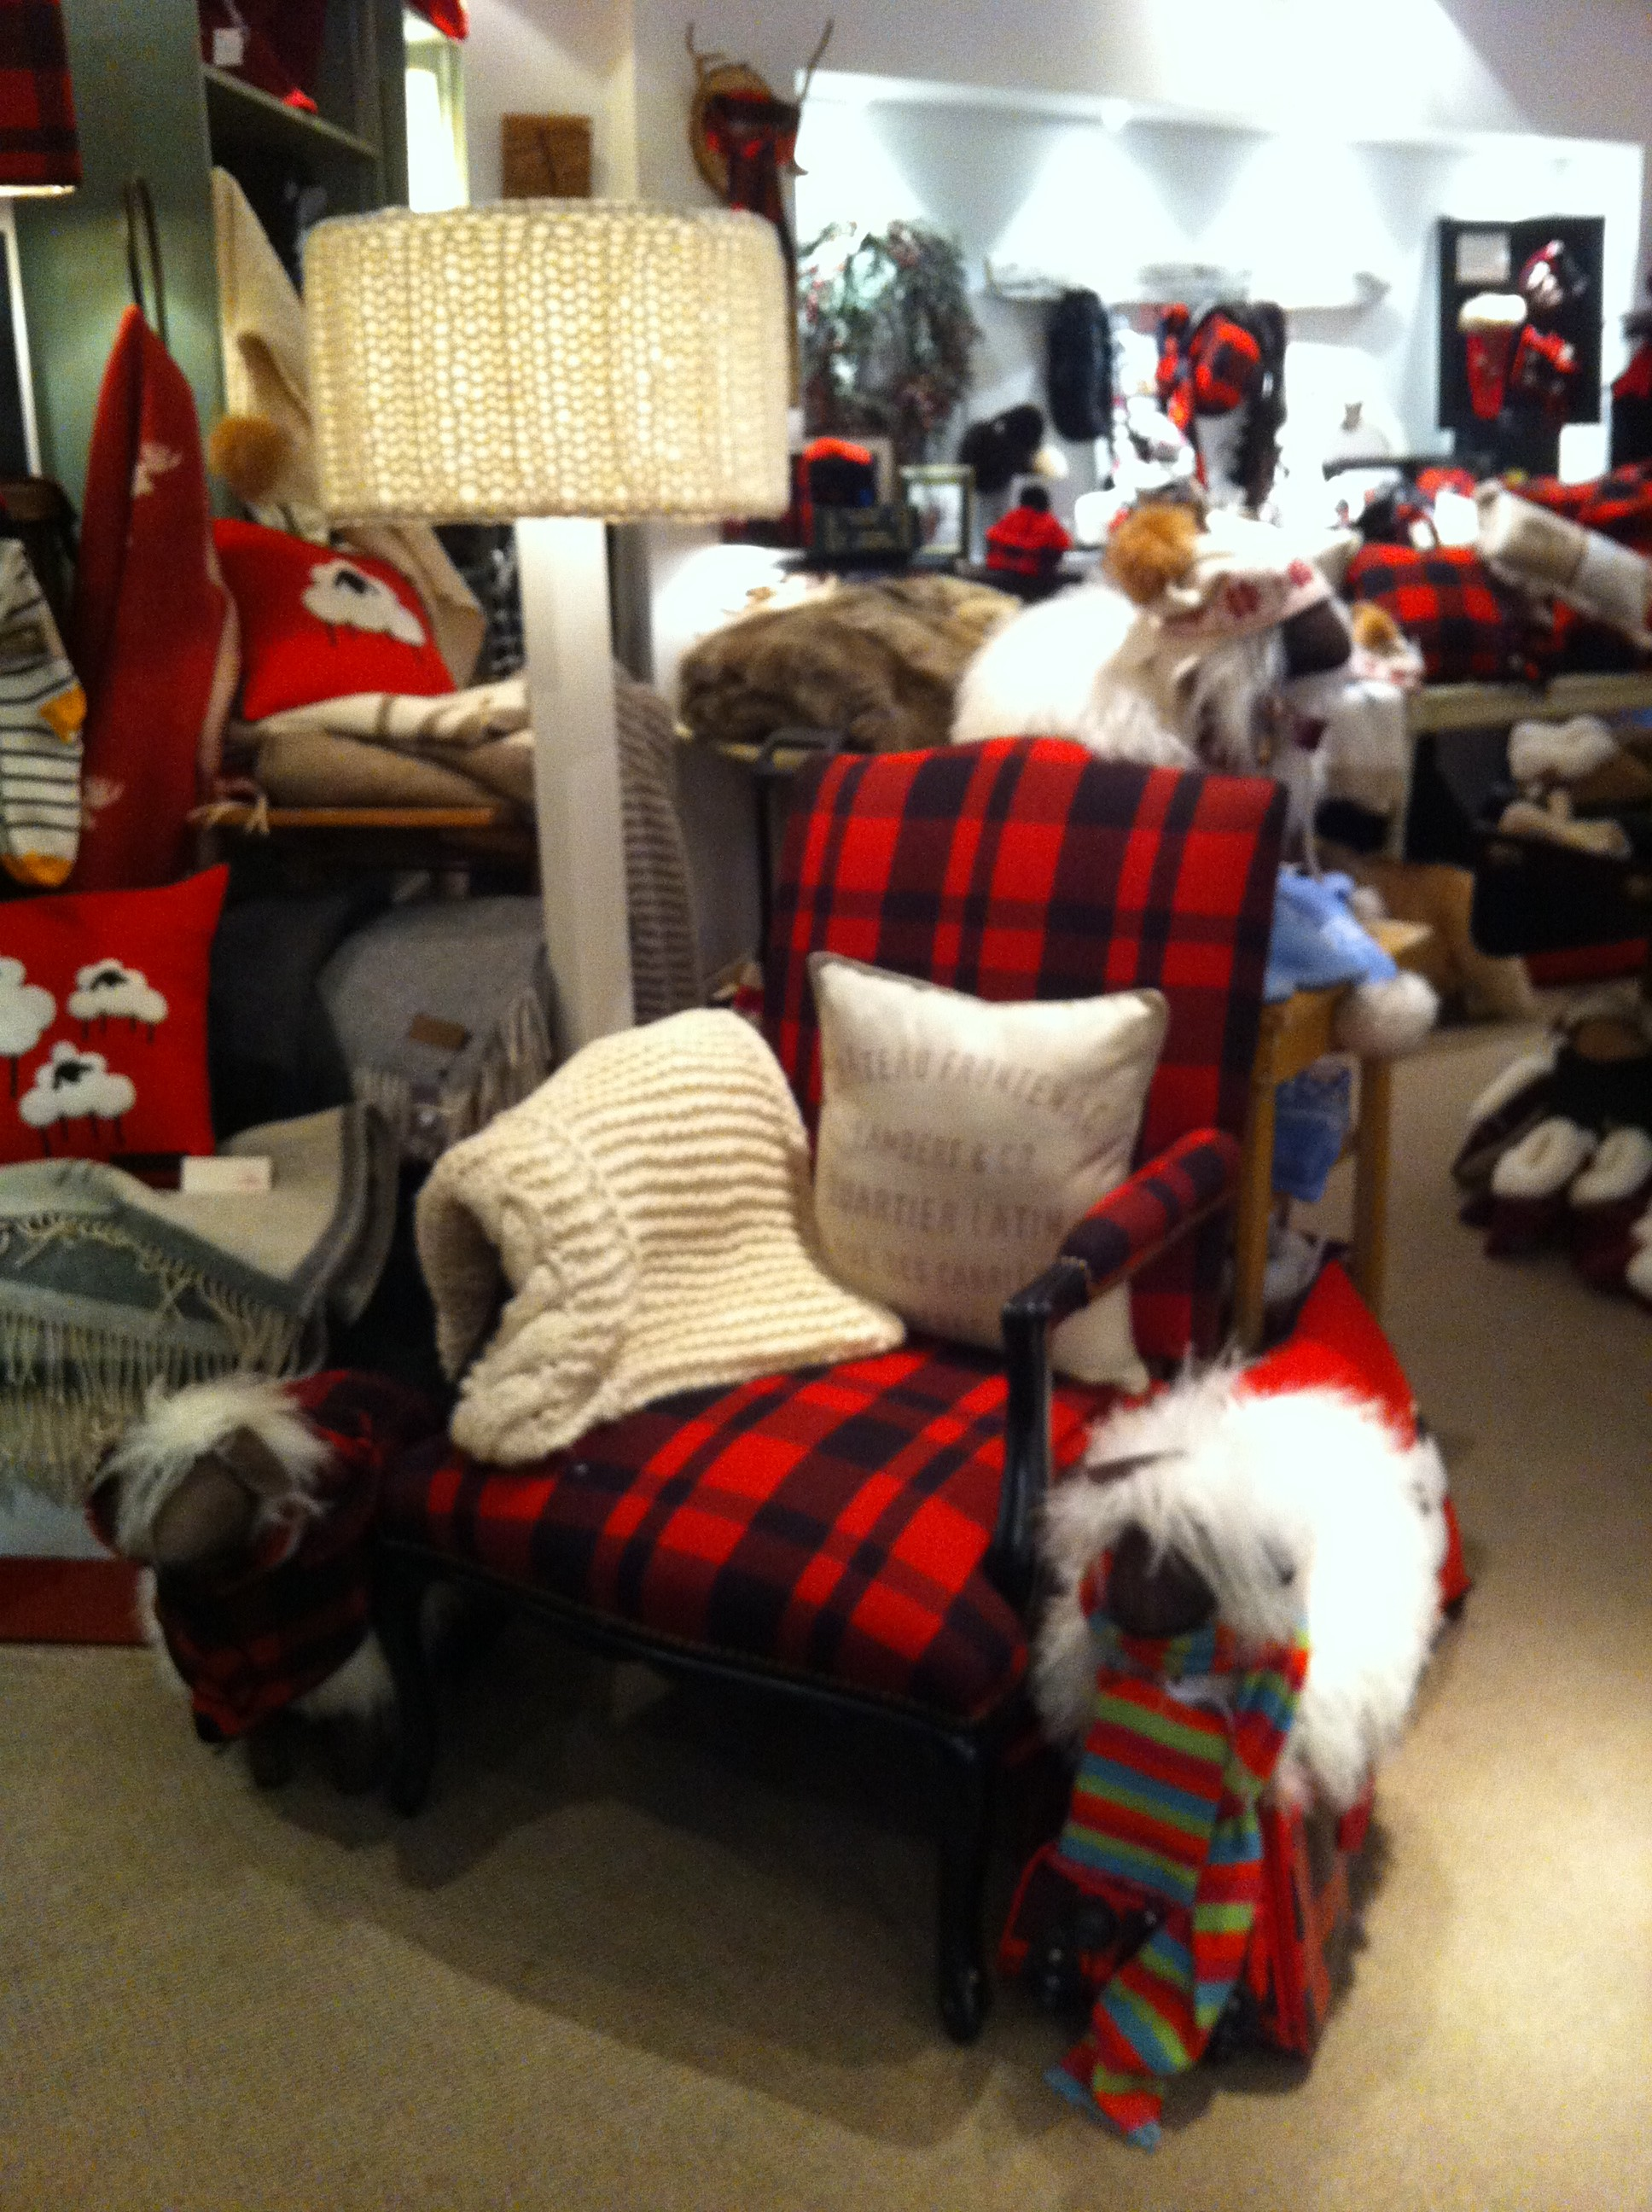 A pic of an armchair upholstered in red buffalo plaid at Lambert & Co